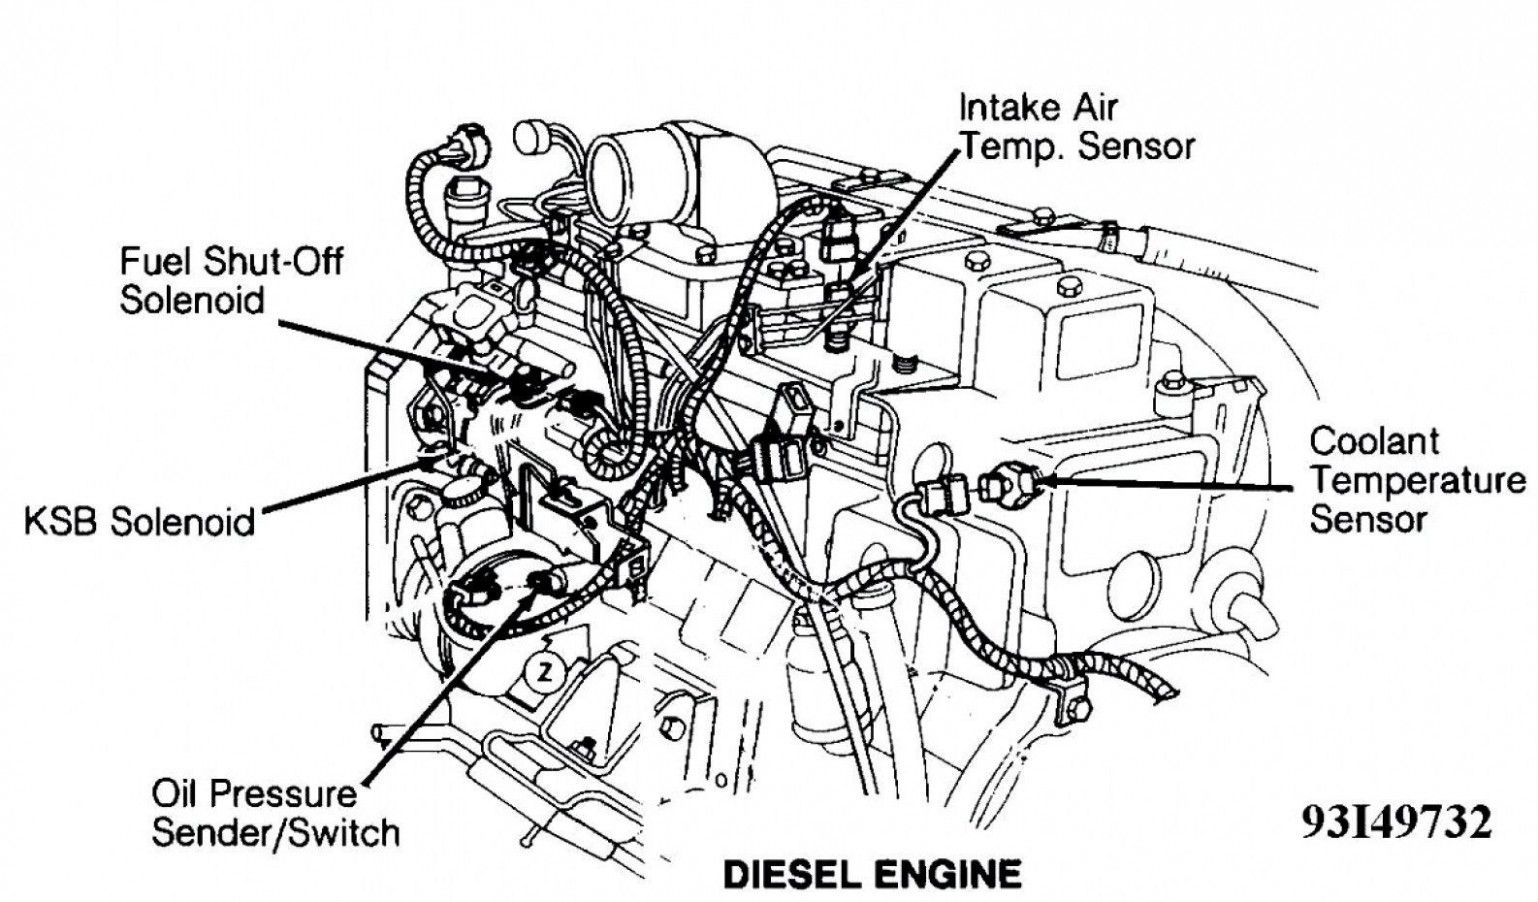 Engine Diagram Simple Motor Engine Diagram Simple Motor